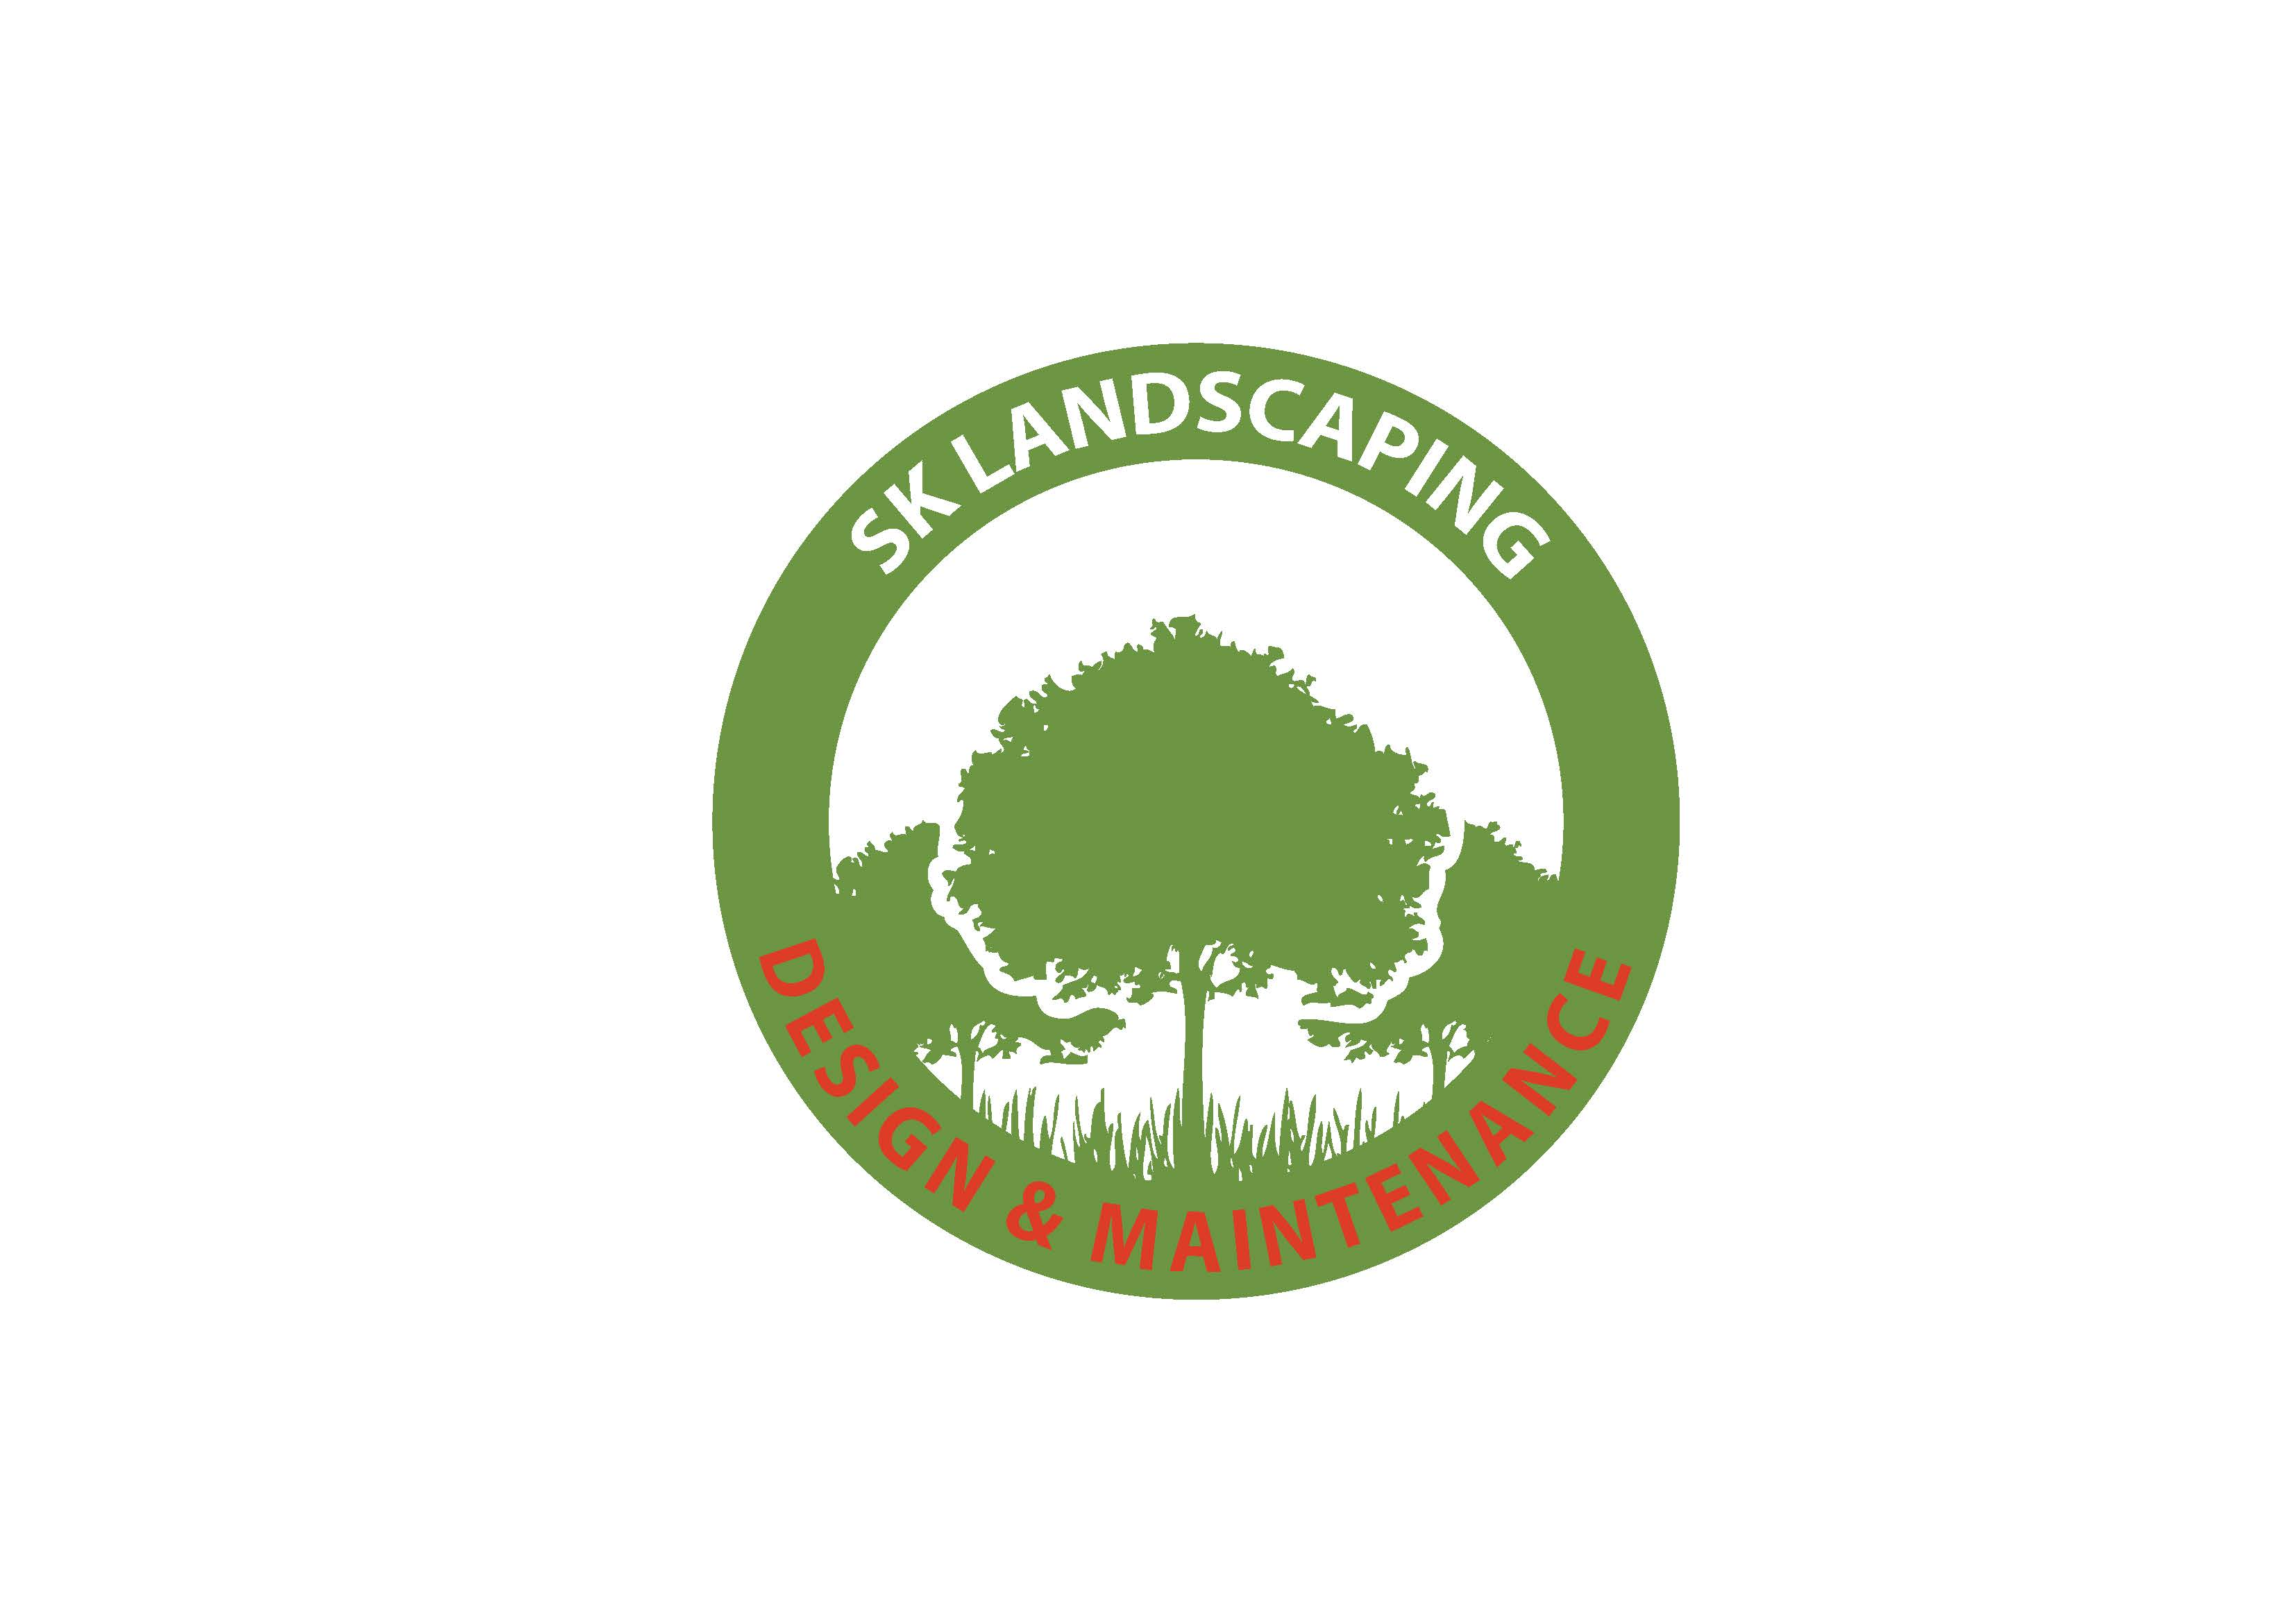 SK Landscaping Design and Maintenance